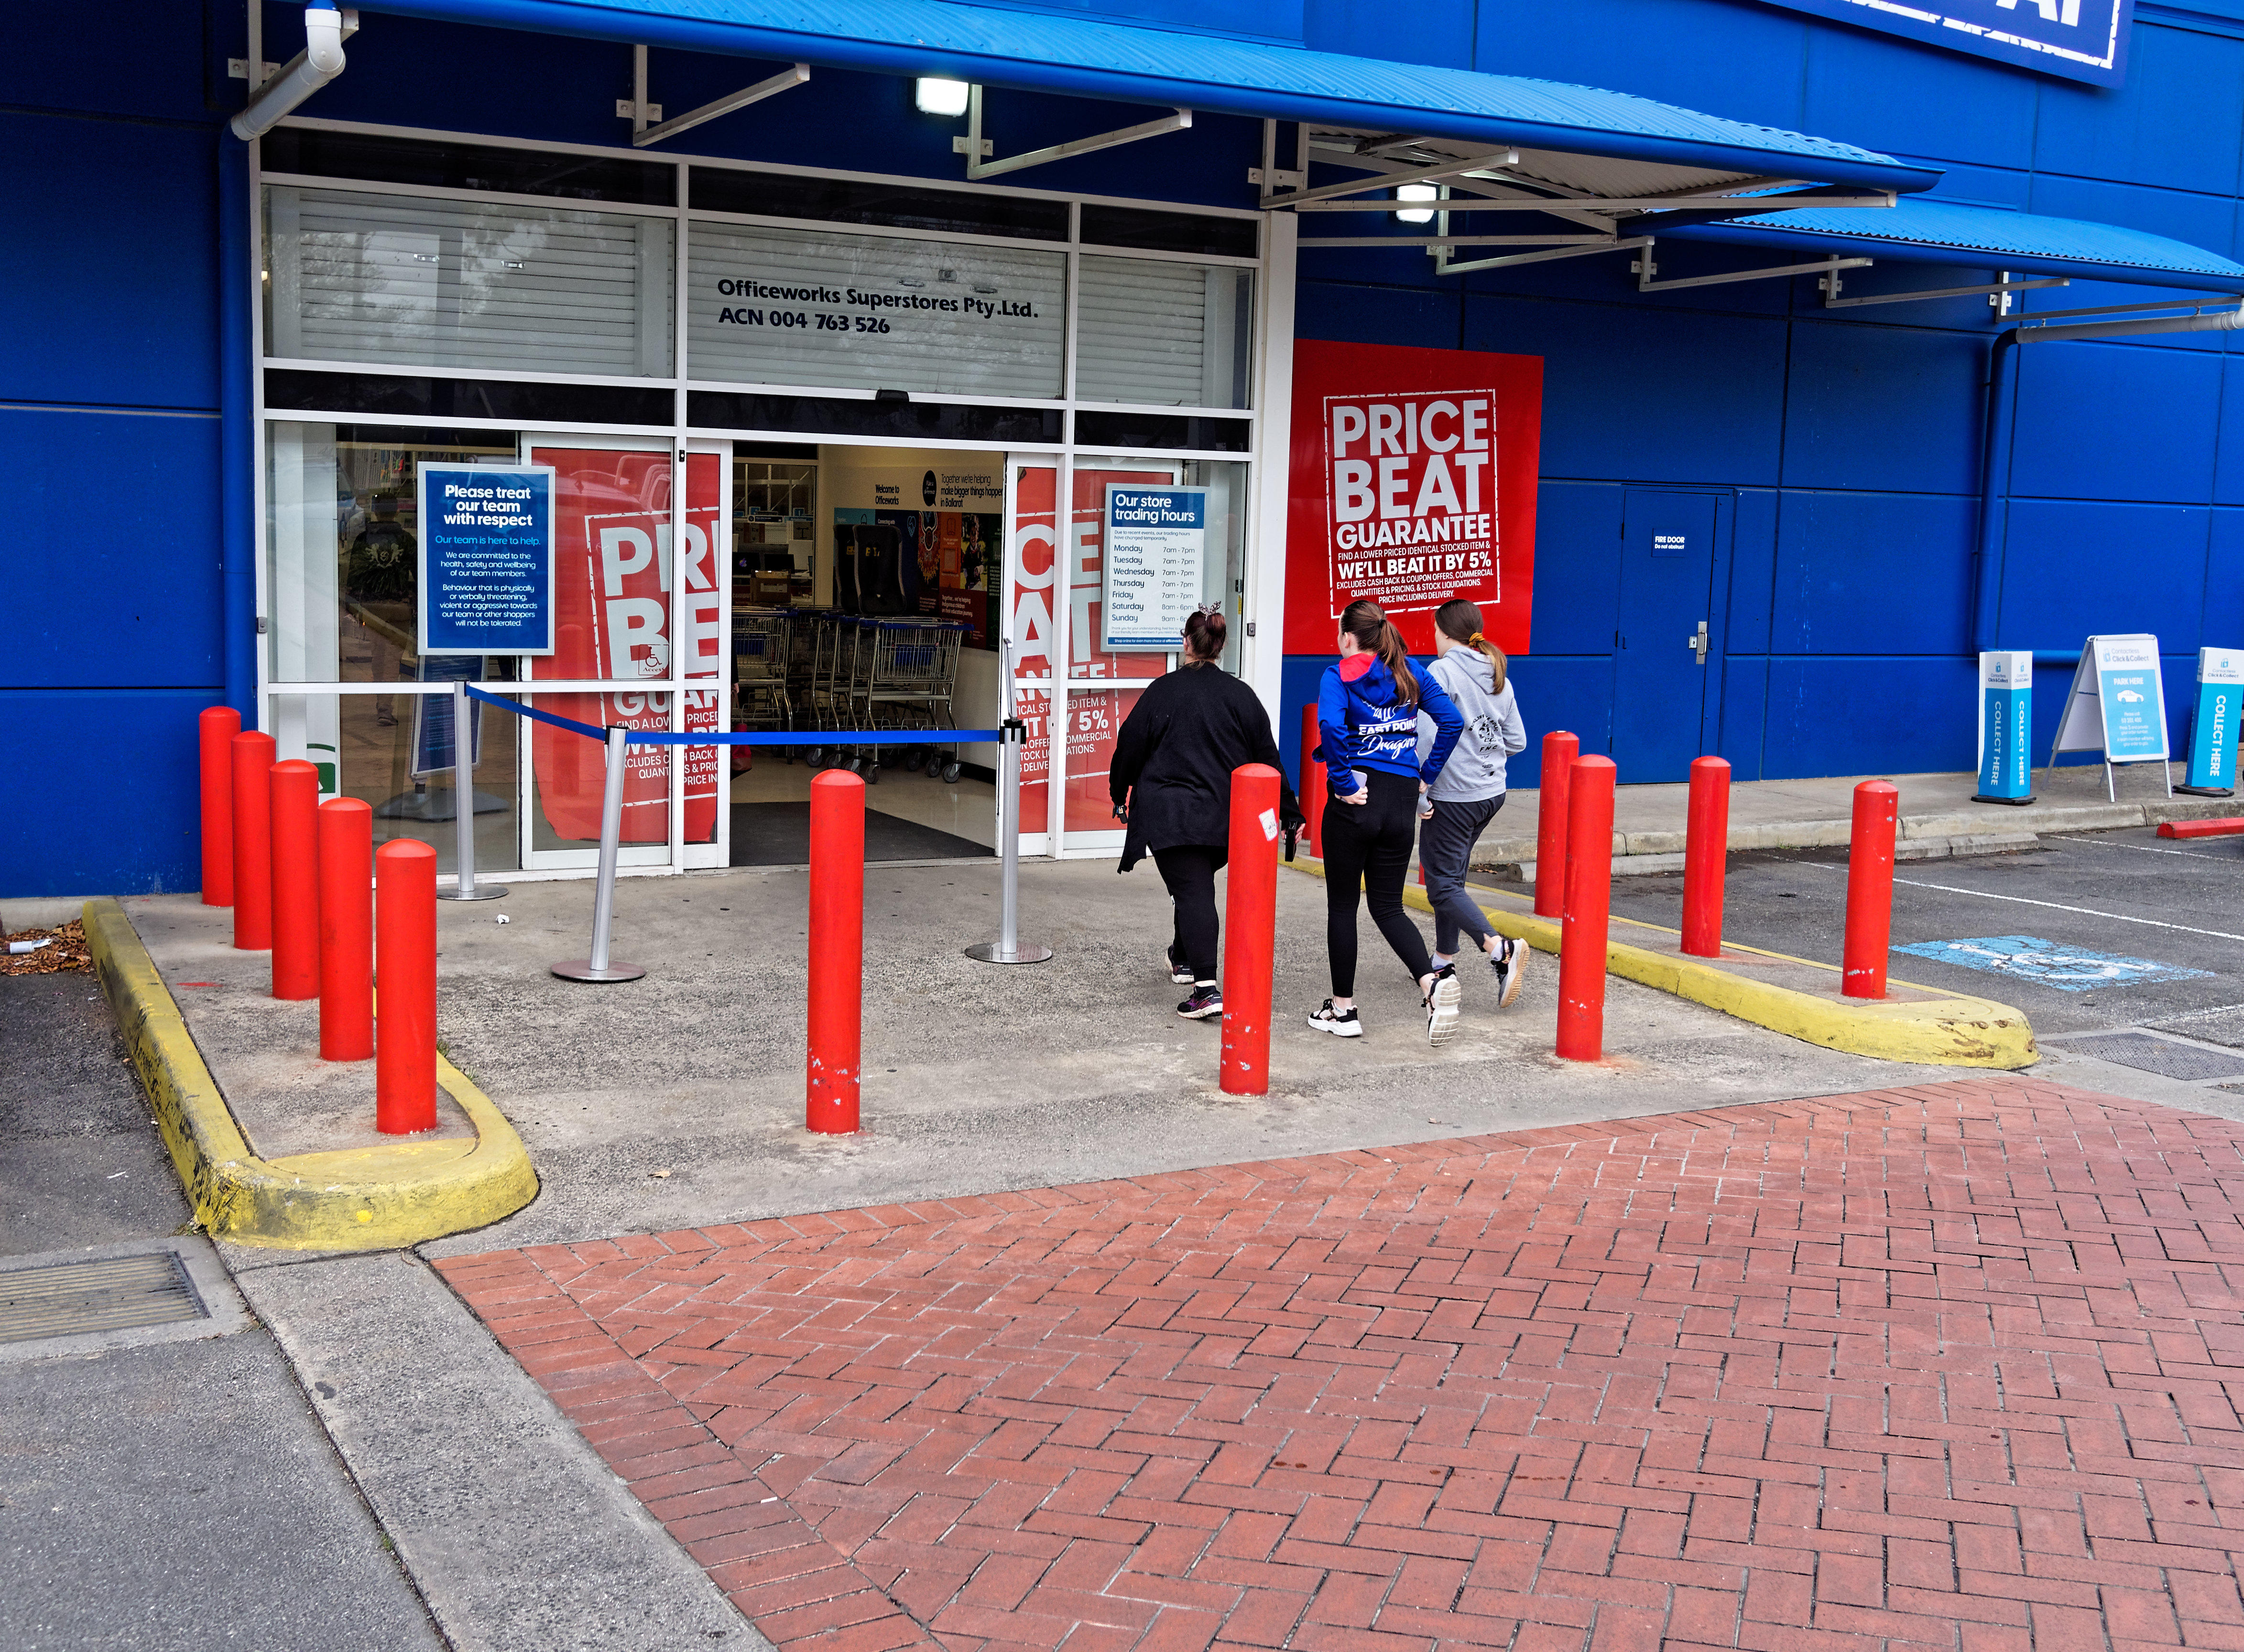 This should be OfficeWorks-2.jpeg.  Is it missing?